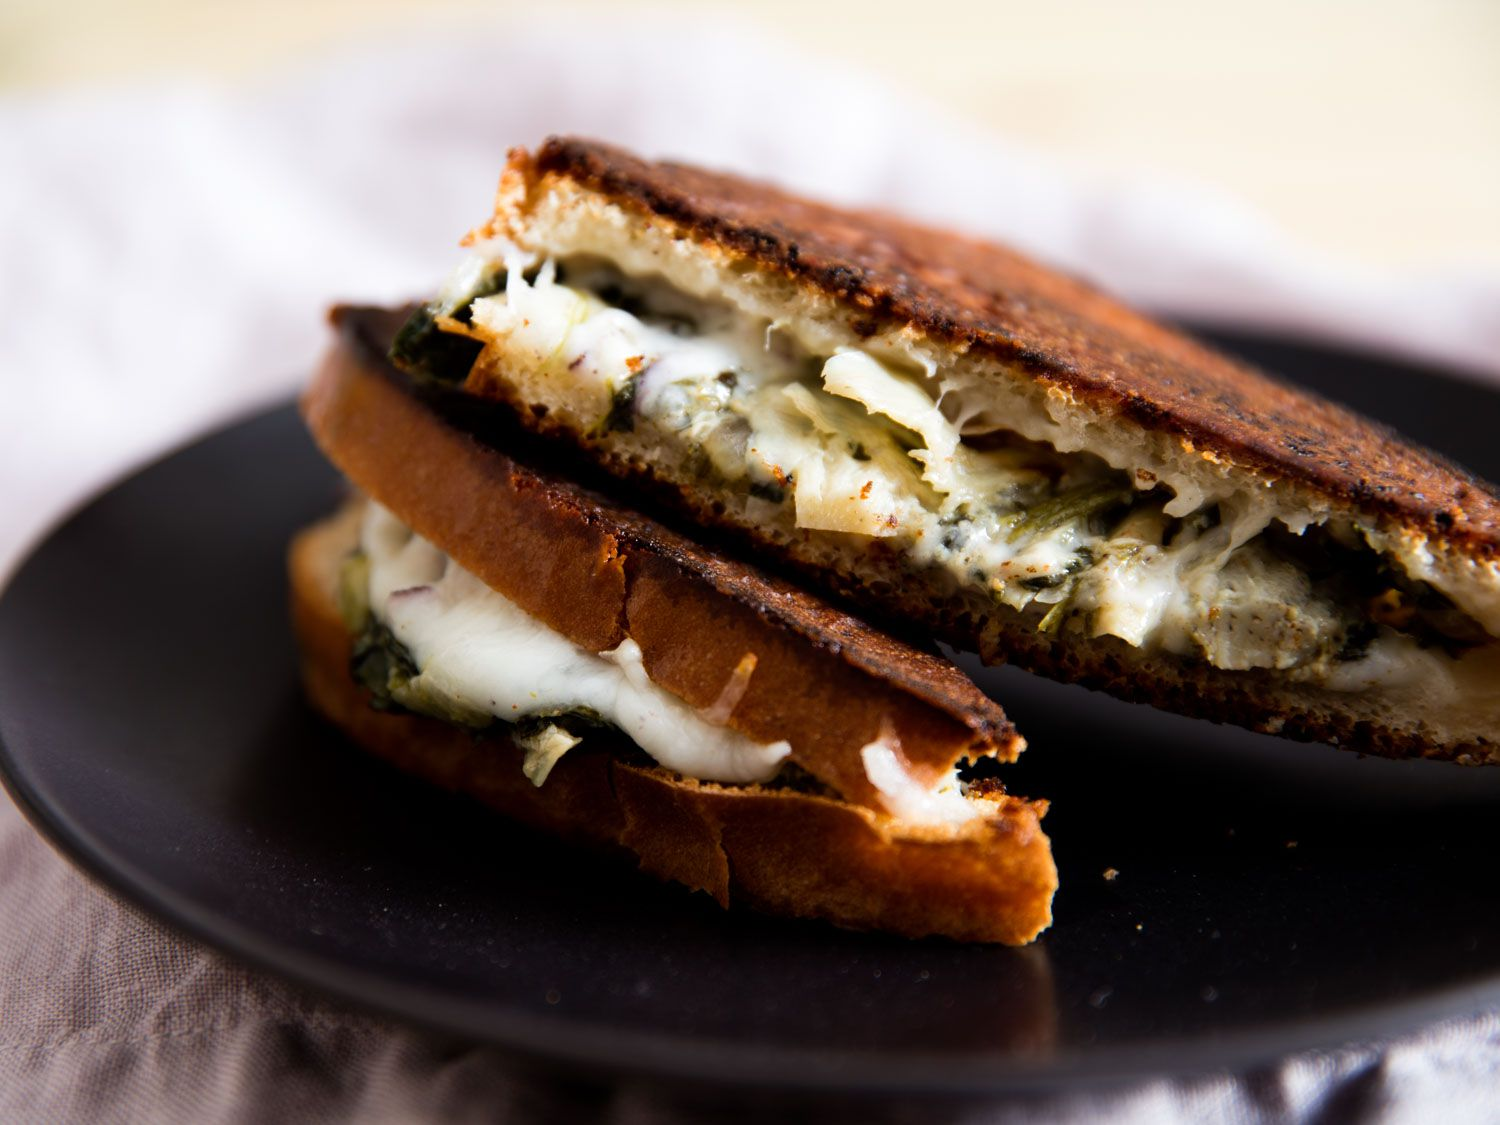 20160826-spinach-artichoke-grilled-cheese-vicky-wasik-5.jpg